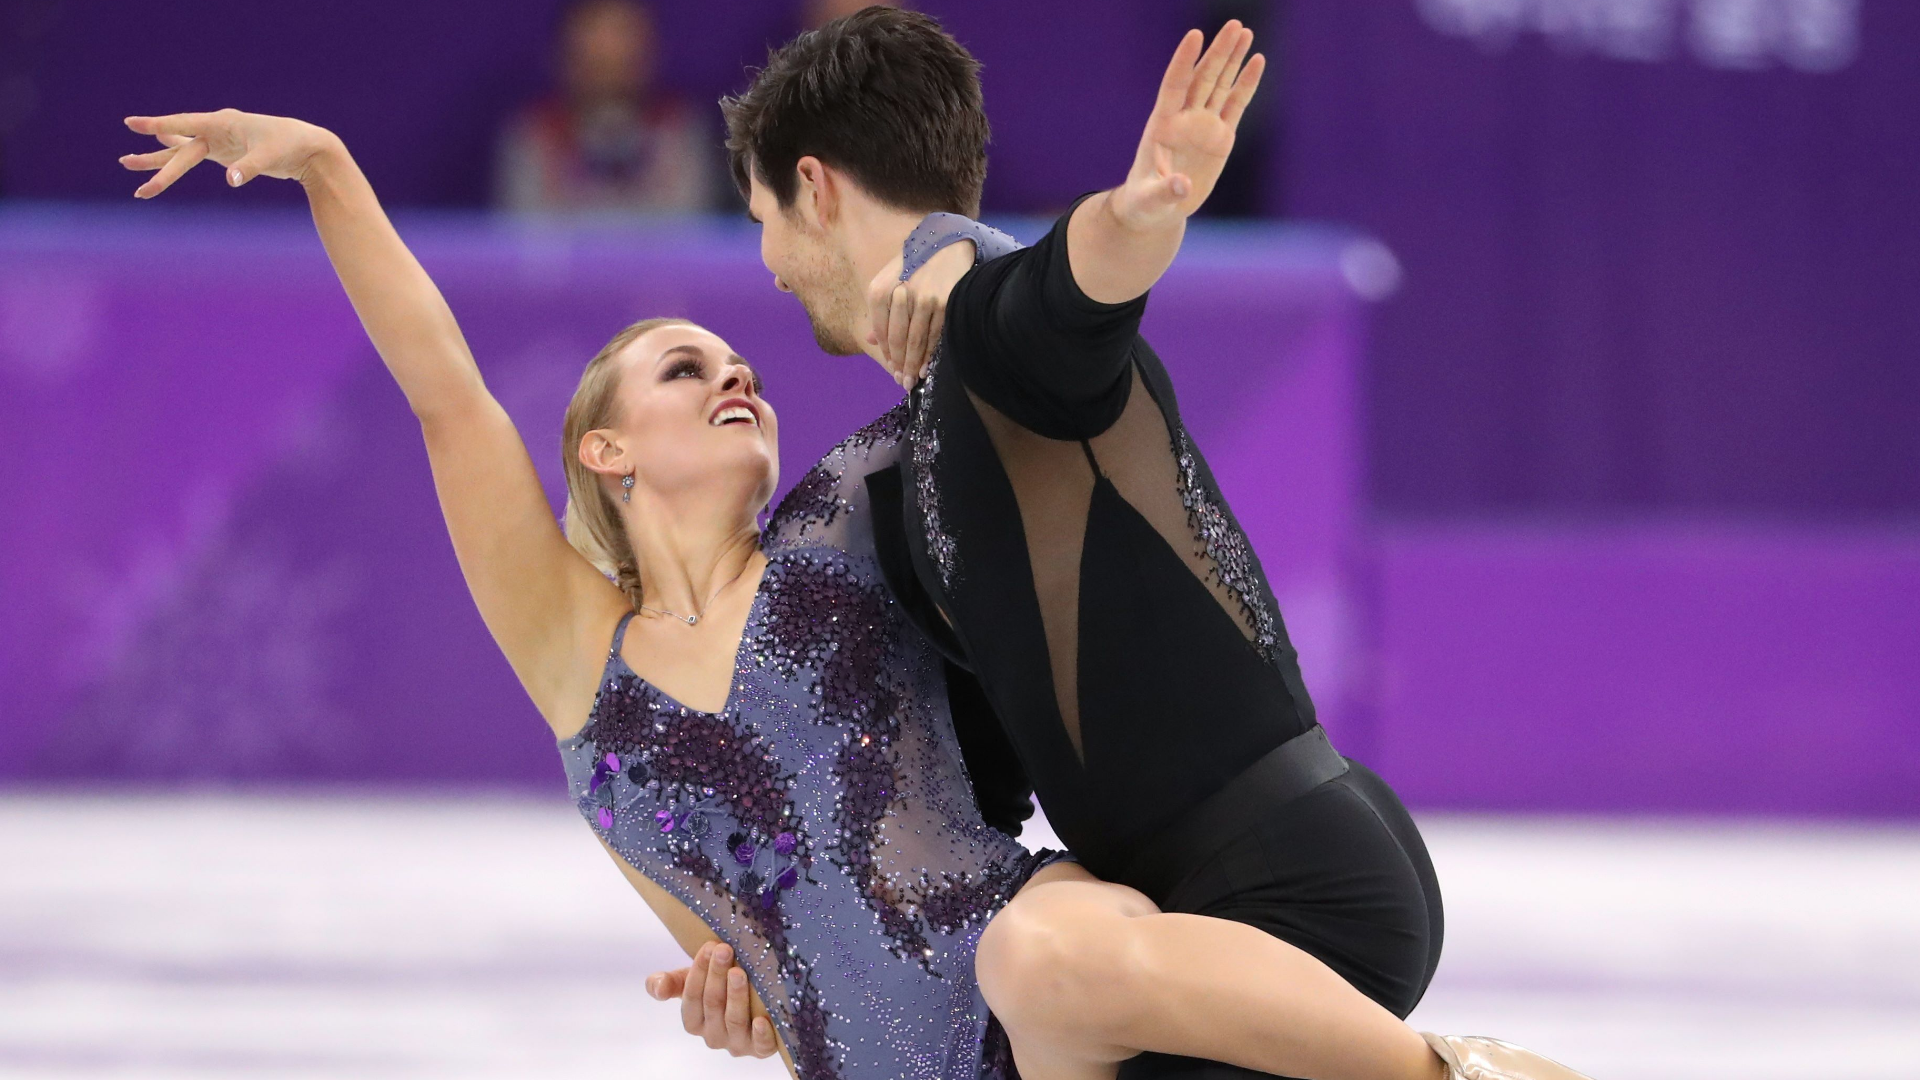 How is figure skating scored?